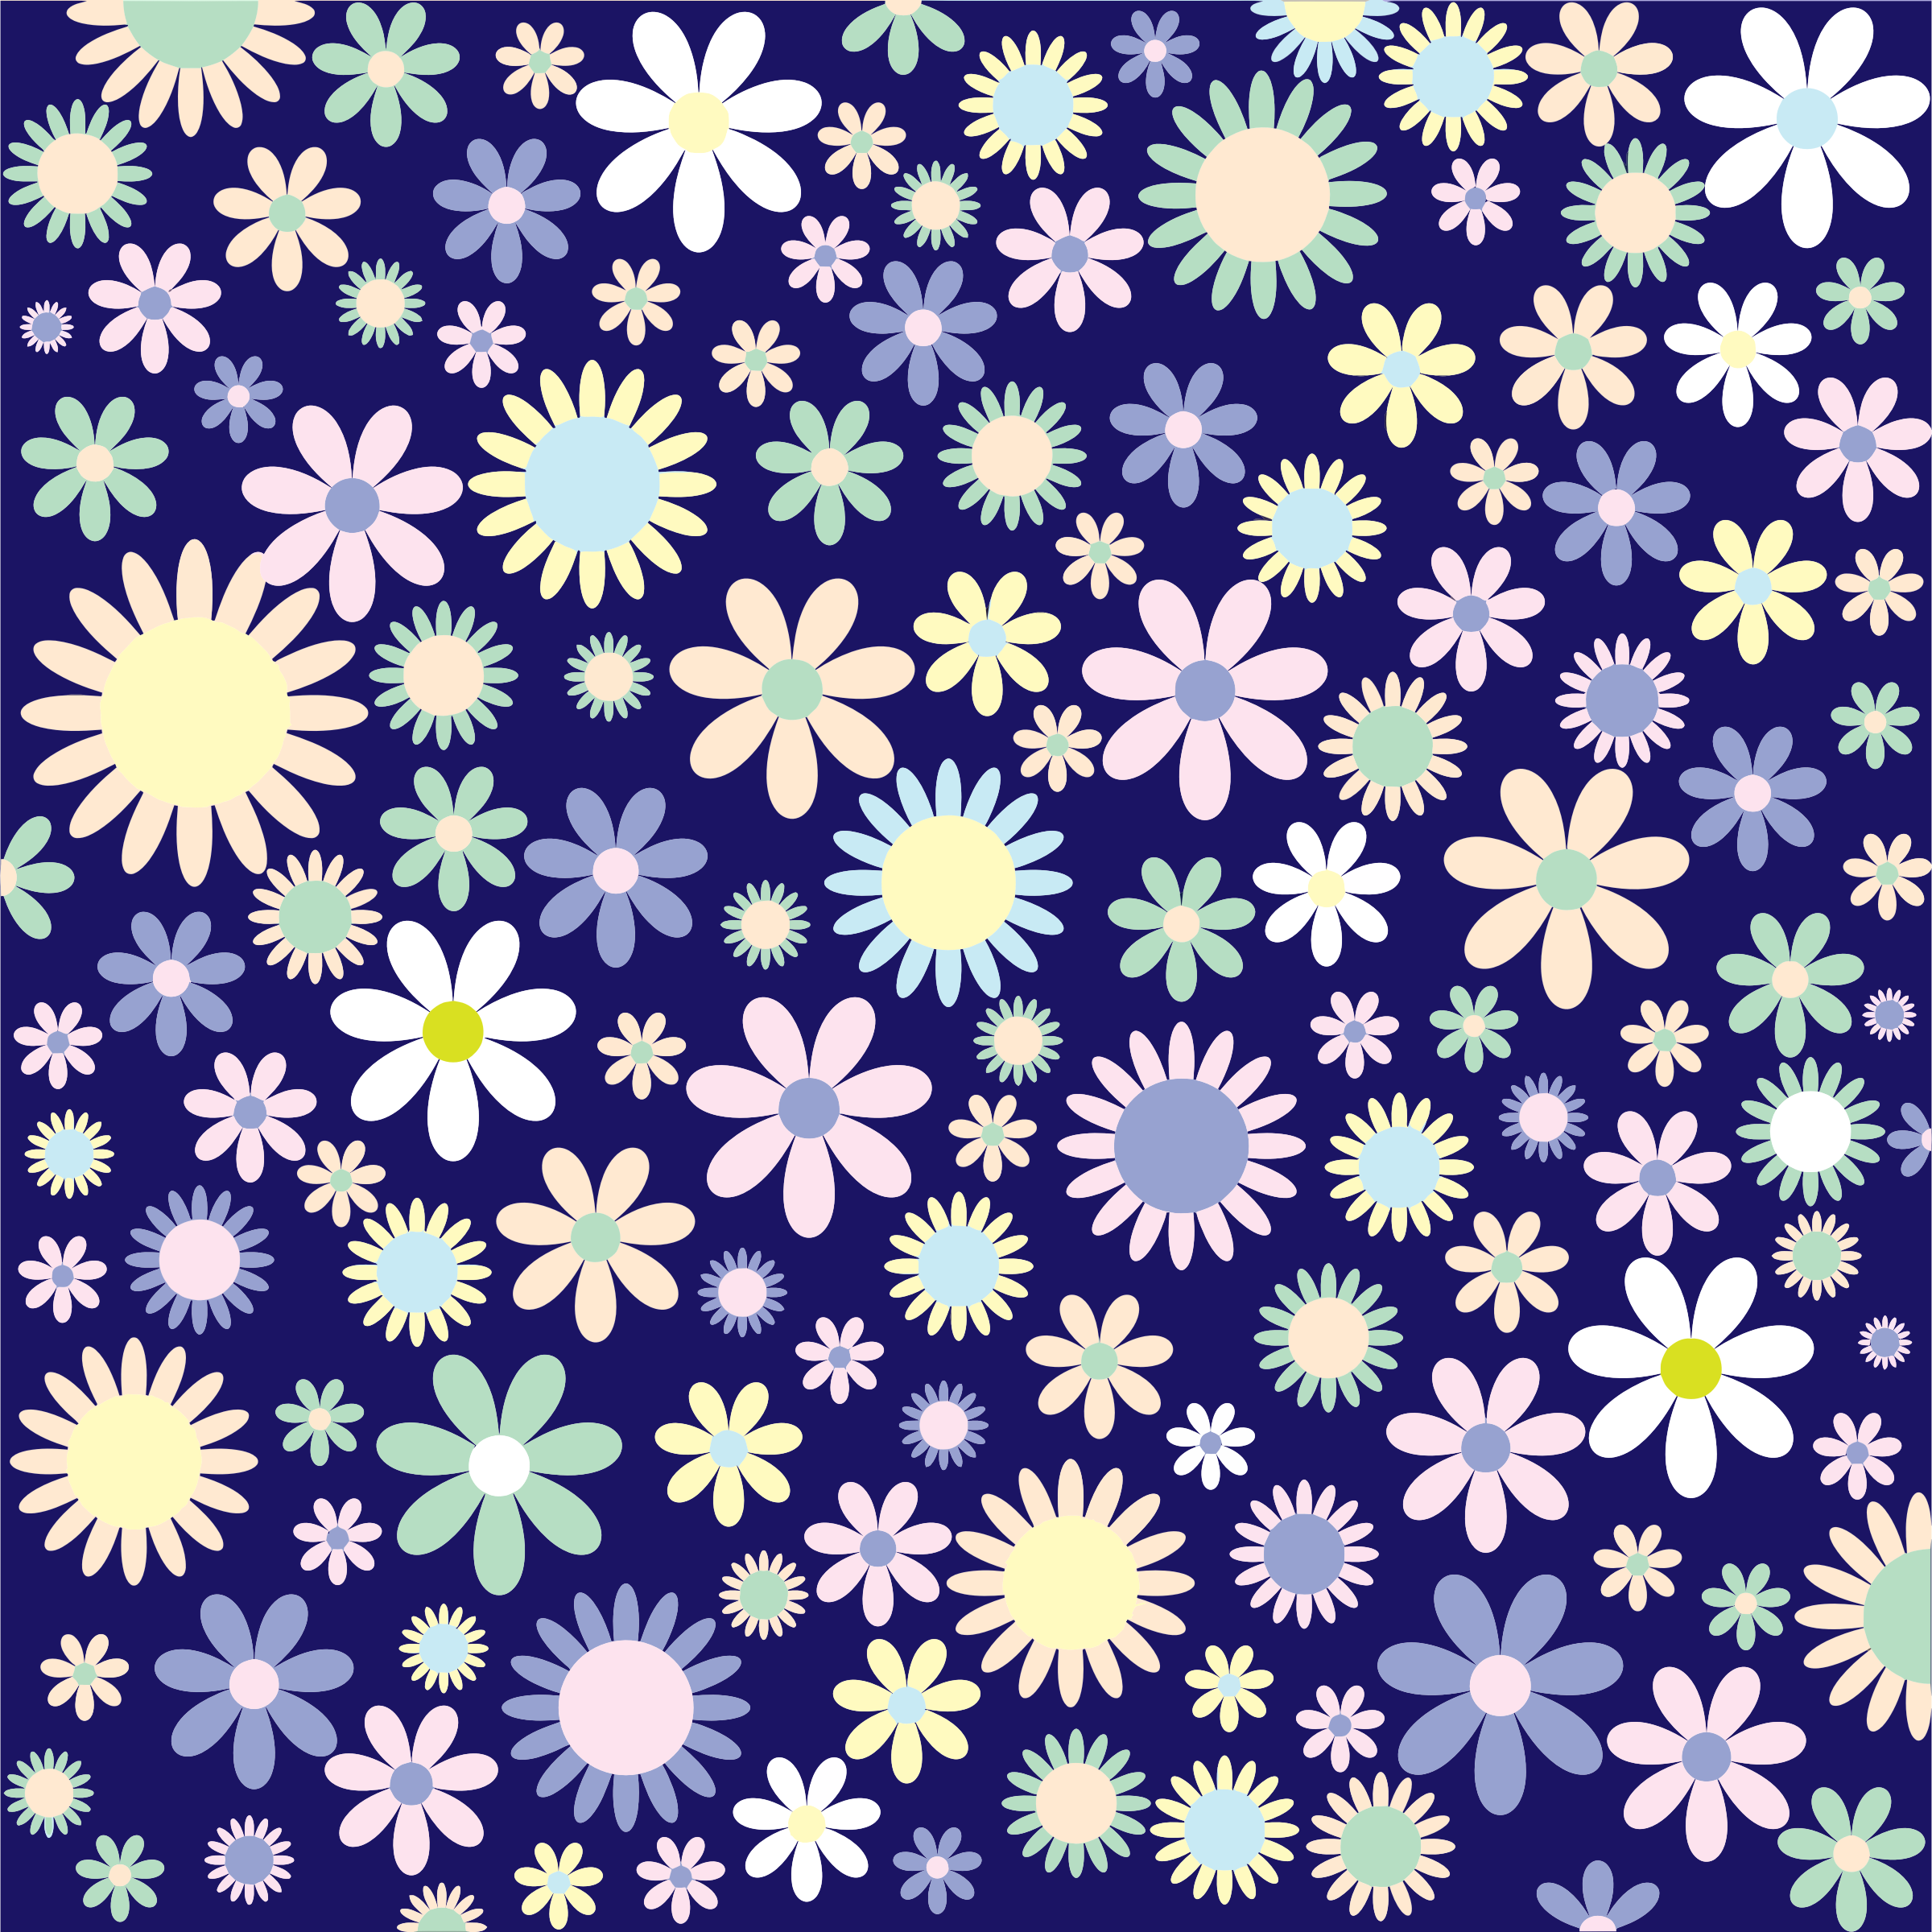 Floral Background by GDJ